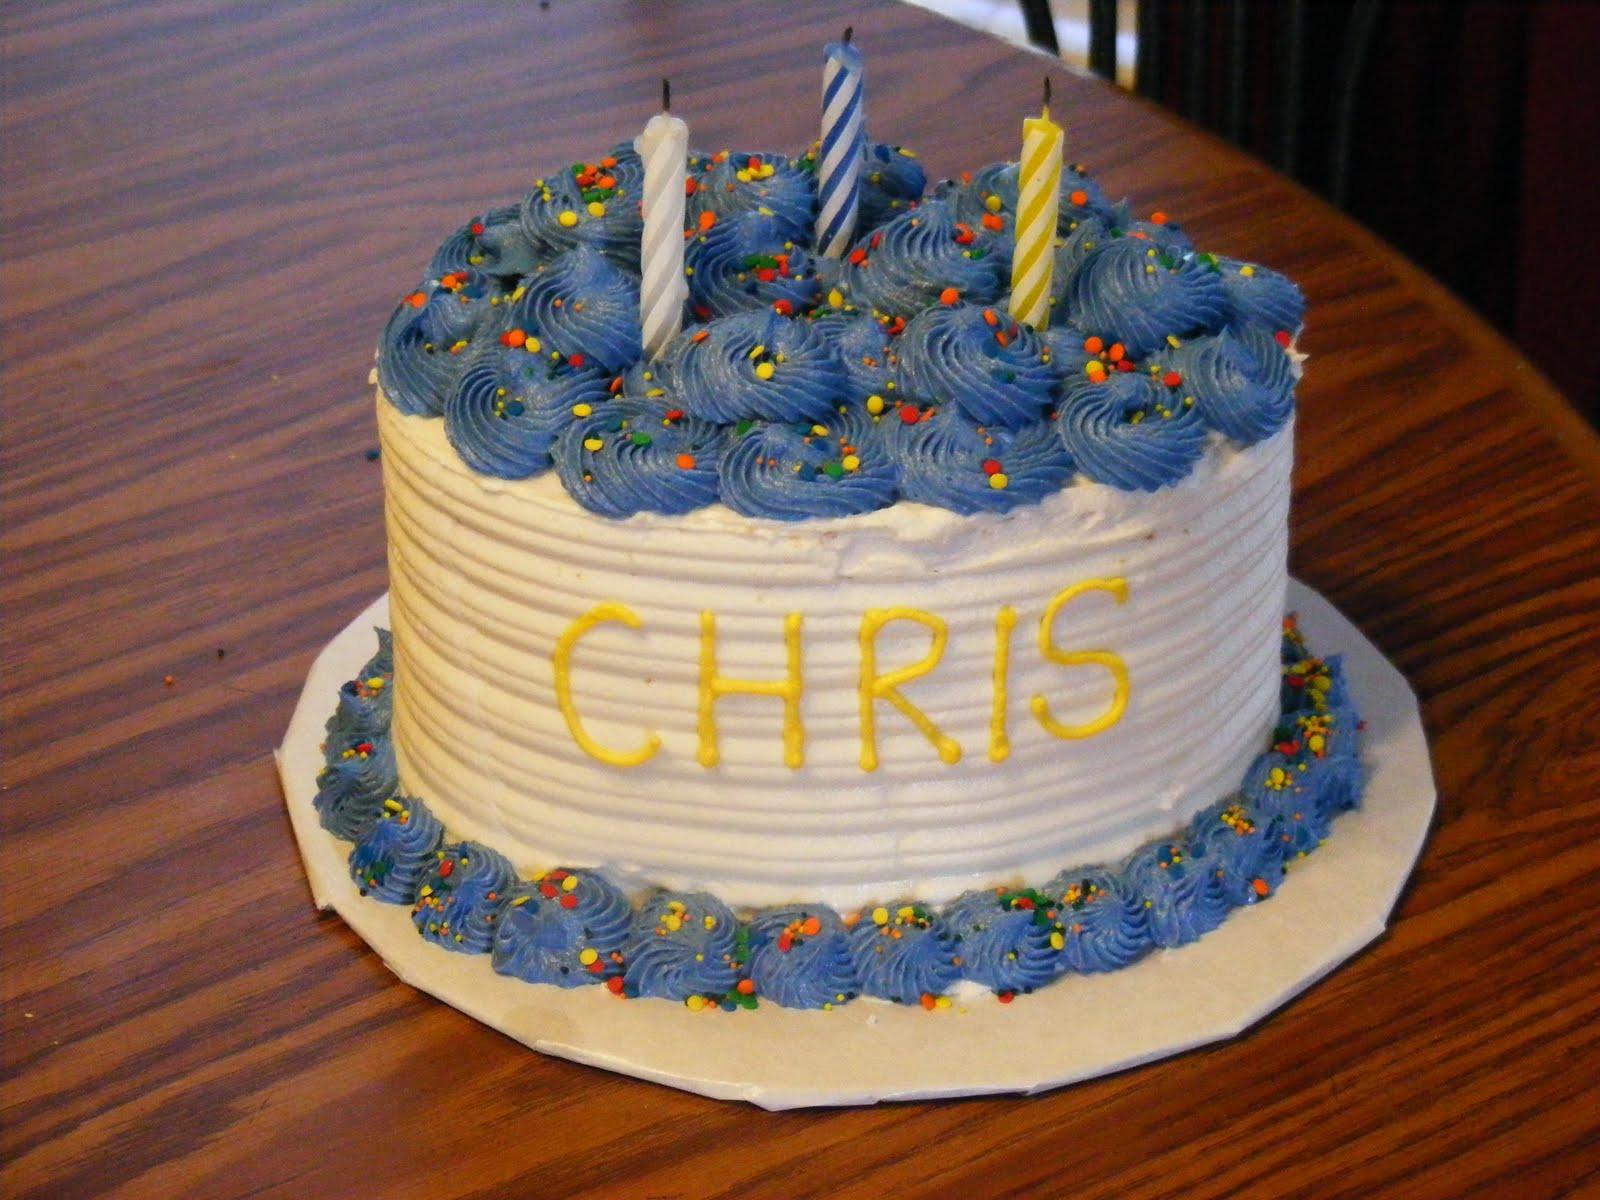 Best ideas about Happy Birthday Chris Cake . Save or Pin Chris Birthday Cakes Now.